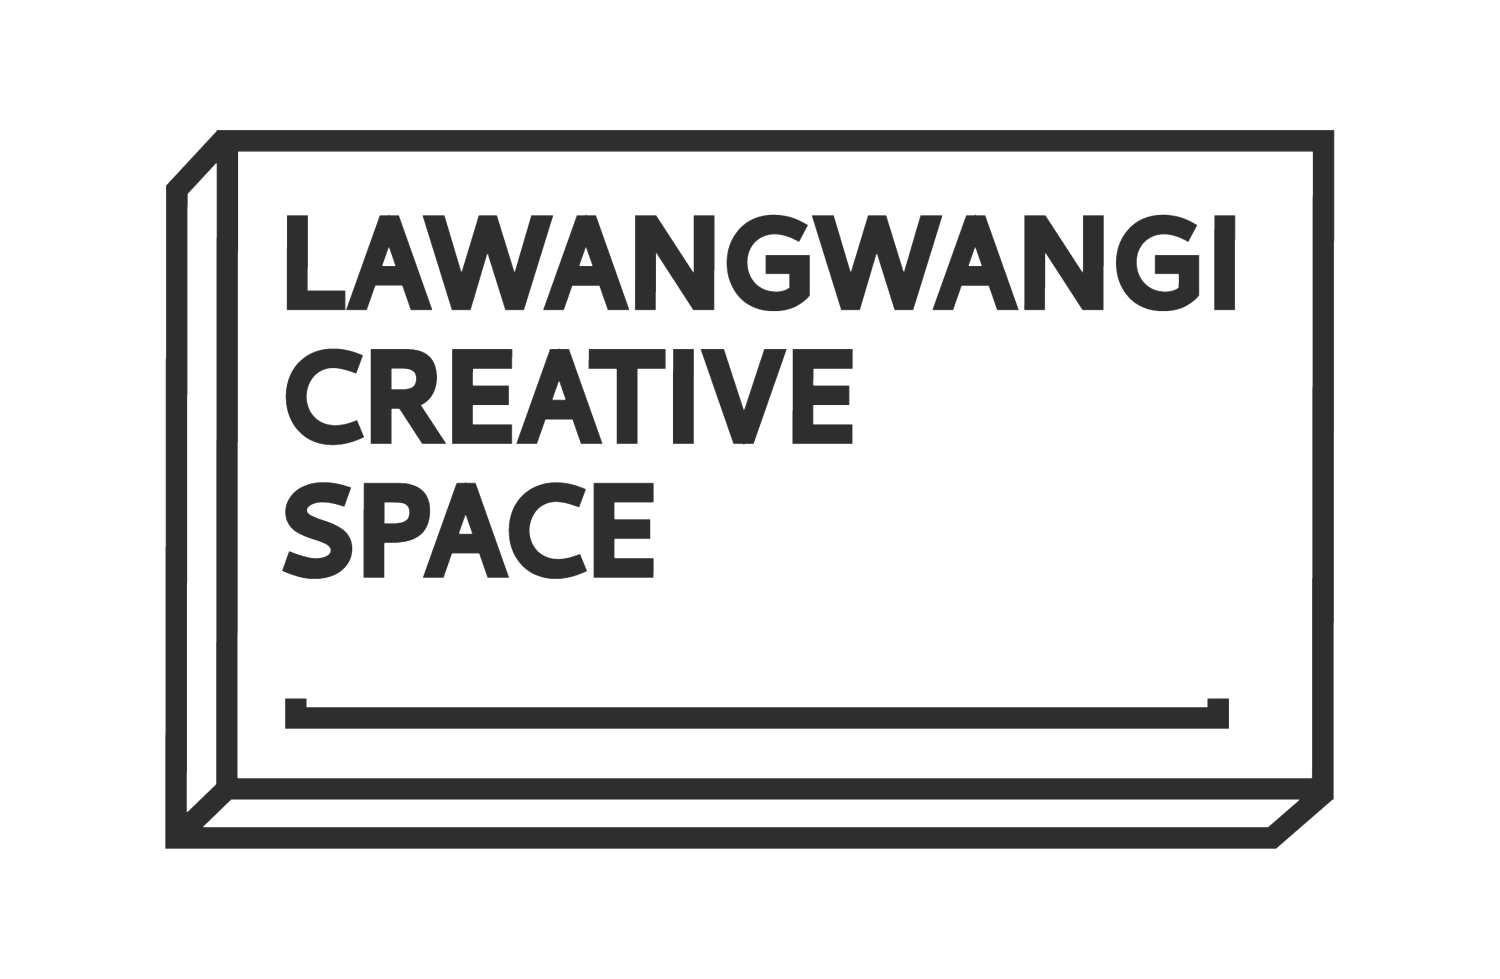 Lawangwangi Creative Space